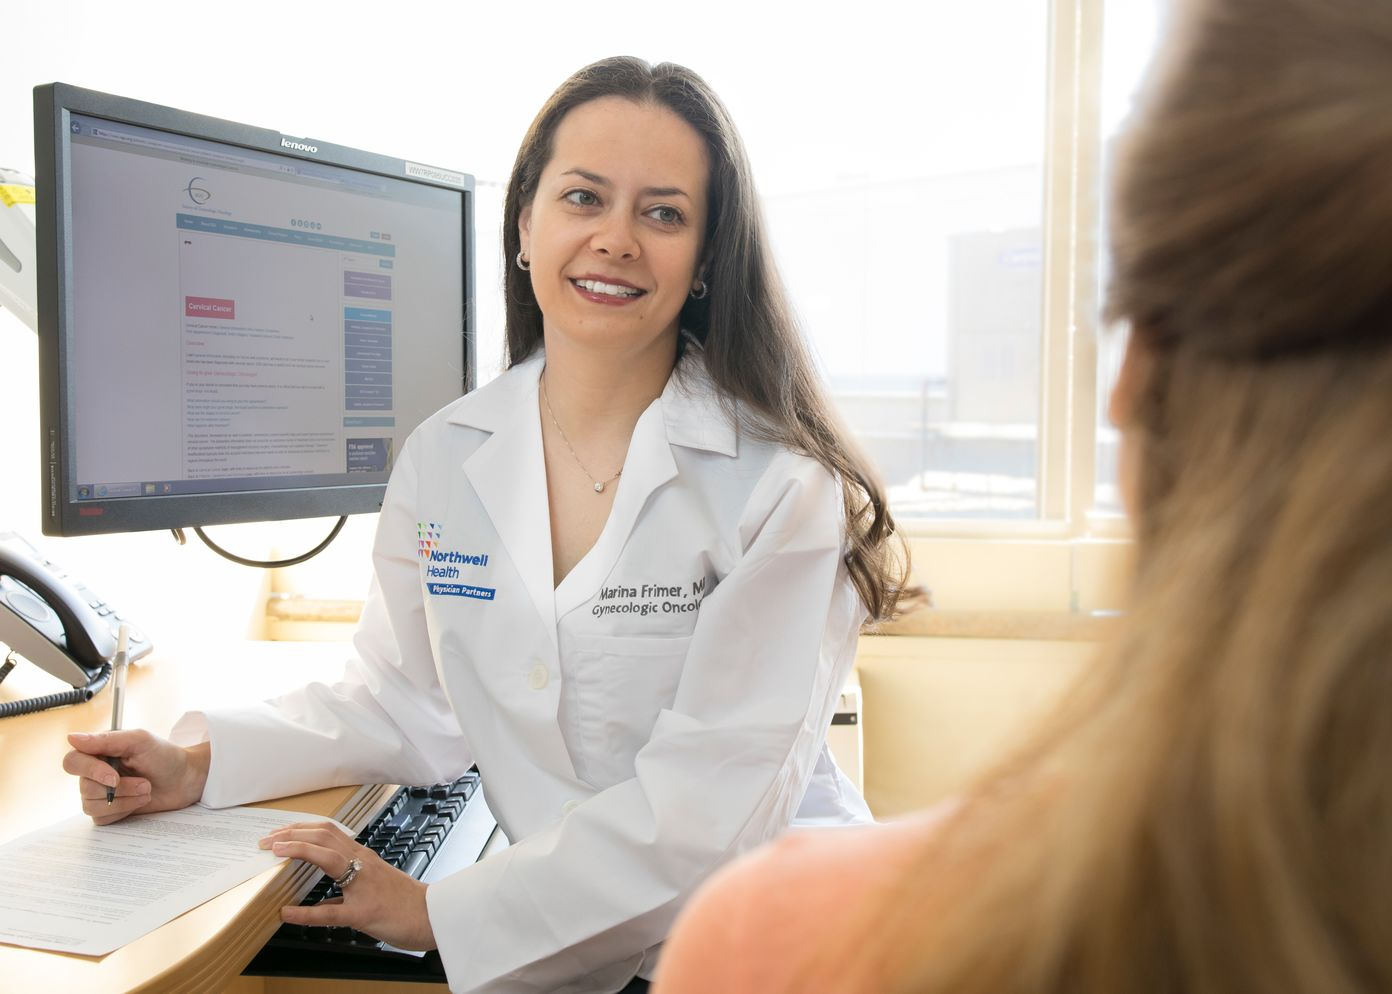 Doctor sitting at desk smiling at patient as she writes something down